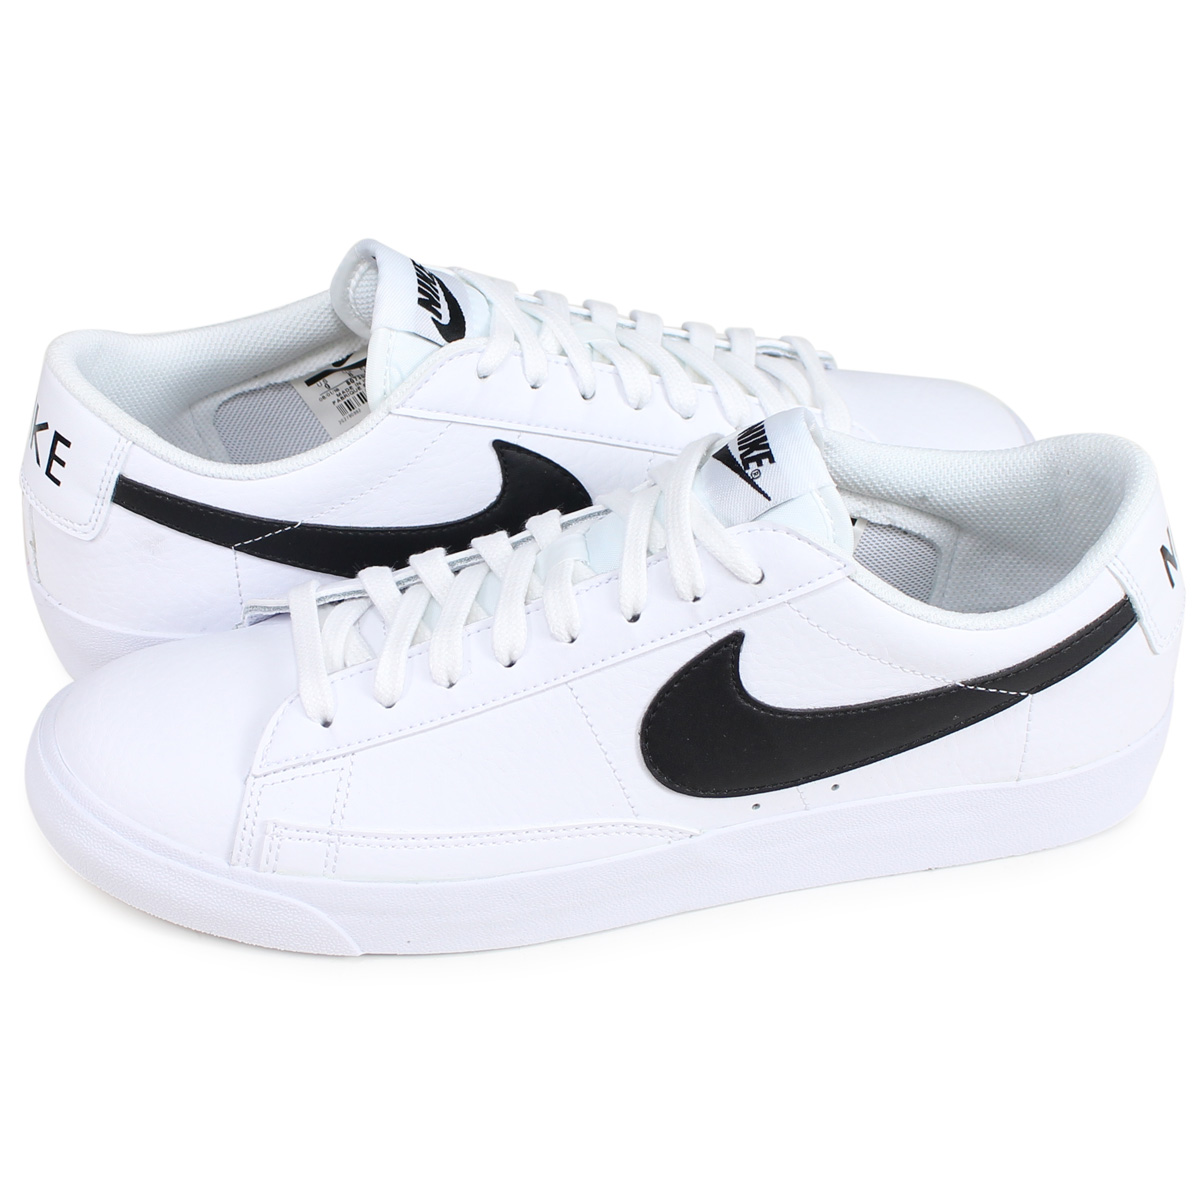 competitive price 71826 d5744 Nike NIKE blazer low sneakers men BLAZER LOW LEATHER white BQ7306-001 [192]